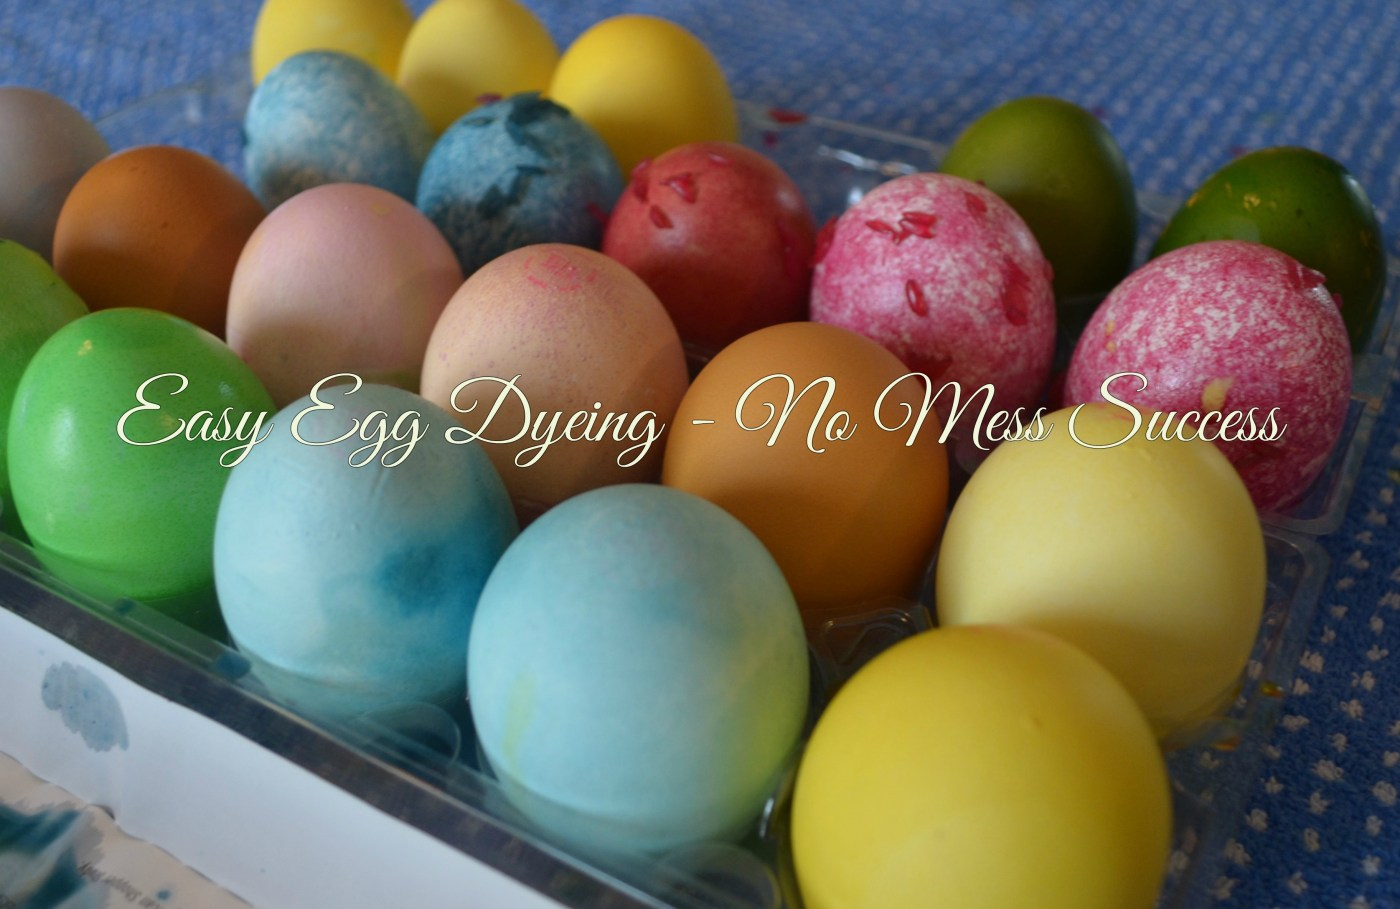 EASY EGG DYEING - NO MESS SUCCESS!